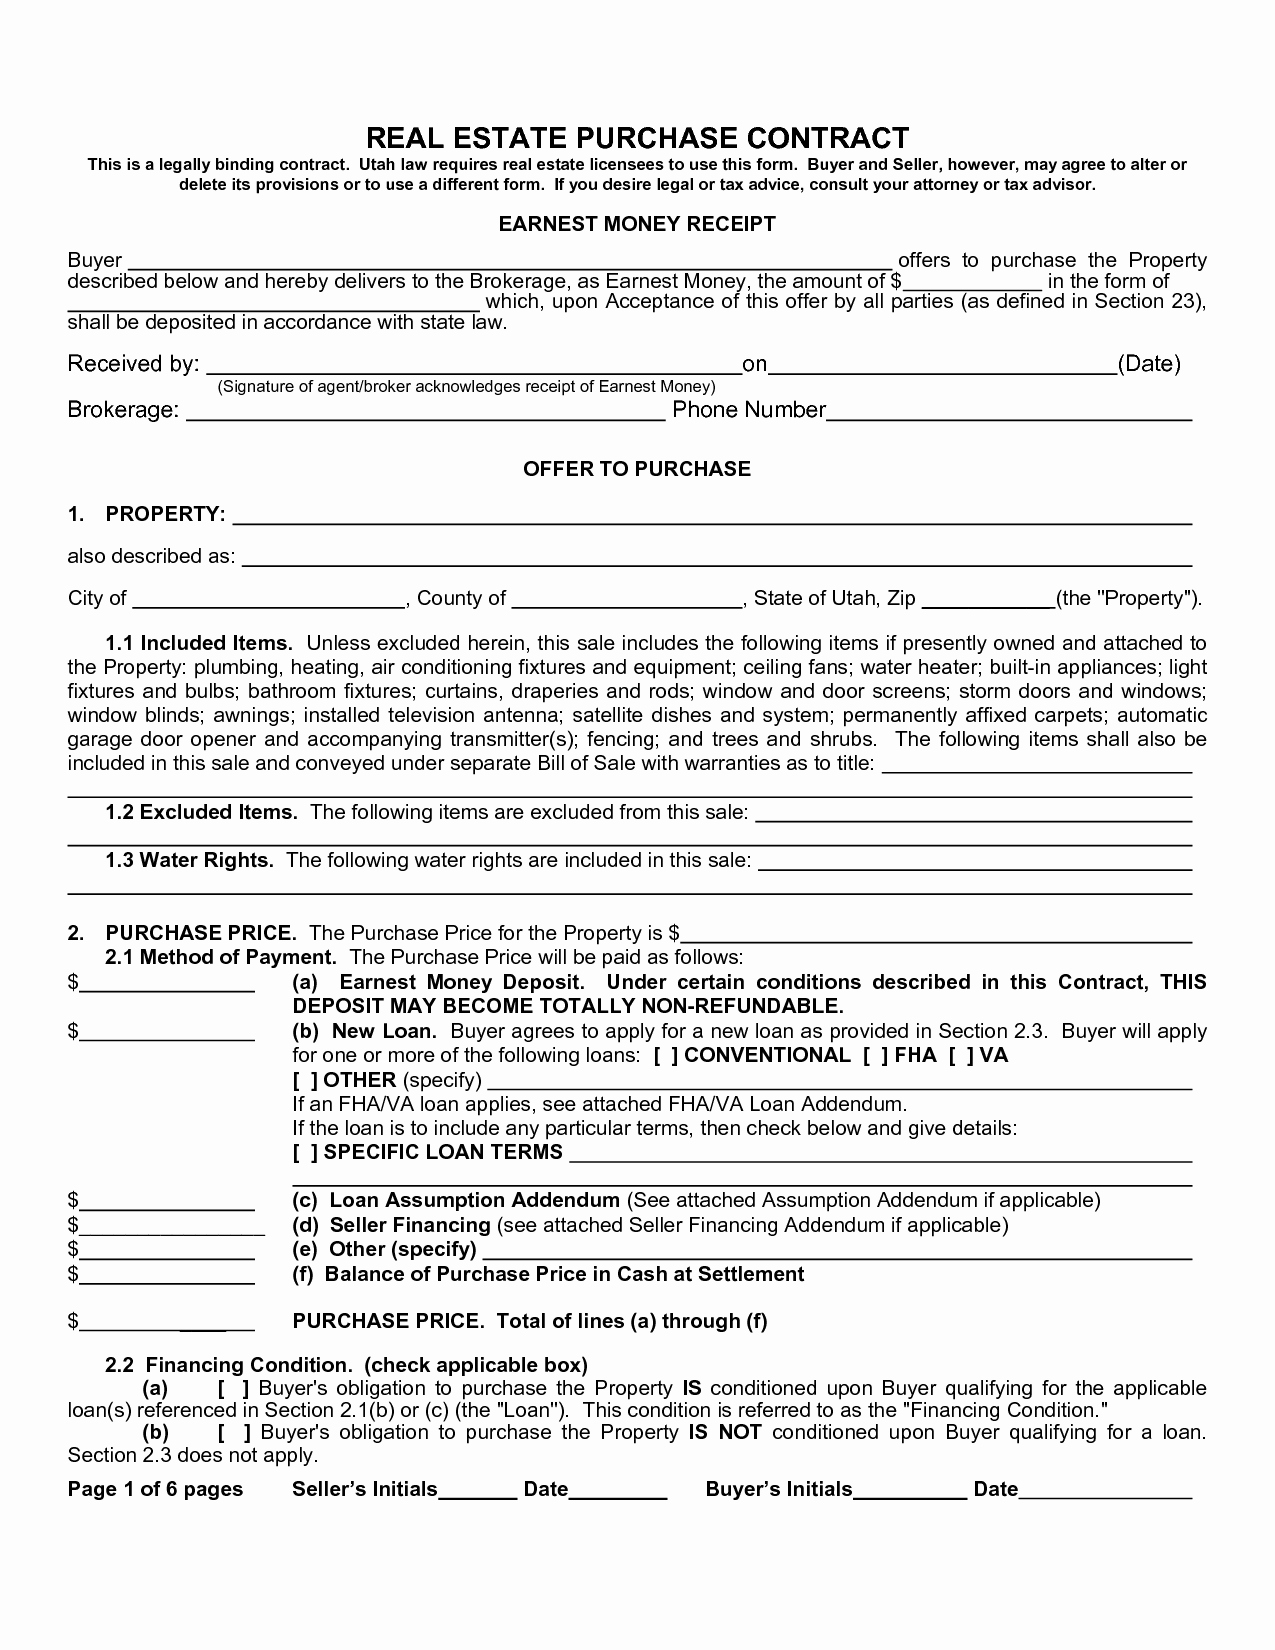 Home Purchase Contract Template Unique Real Estate Purchase Agreement form Sample Image Gallery